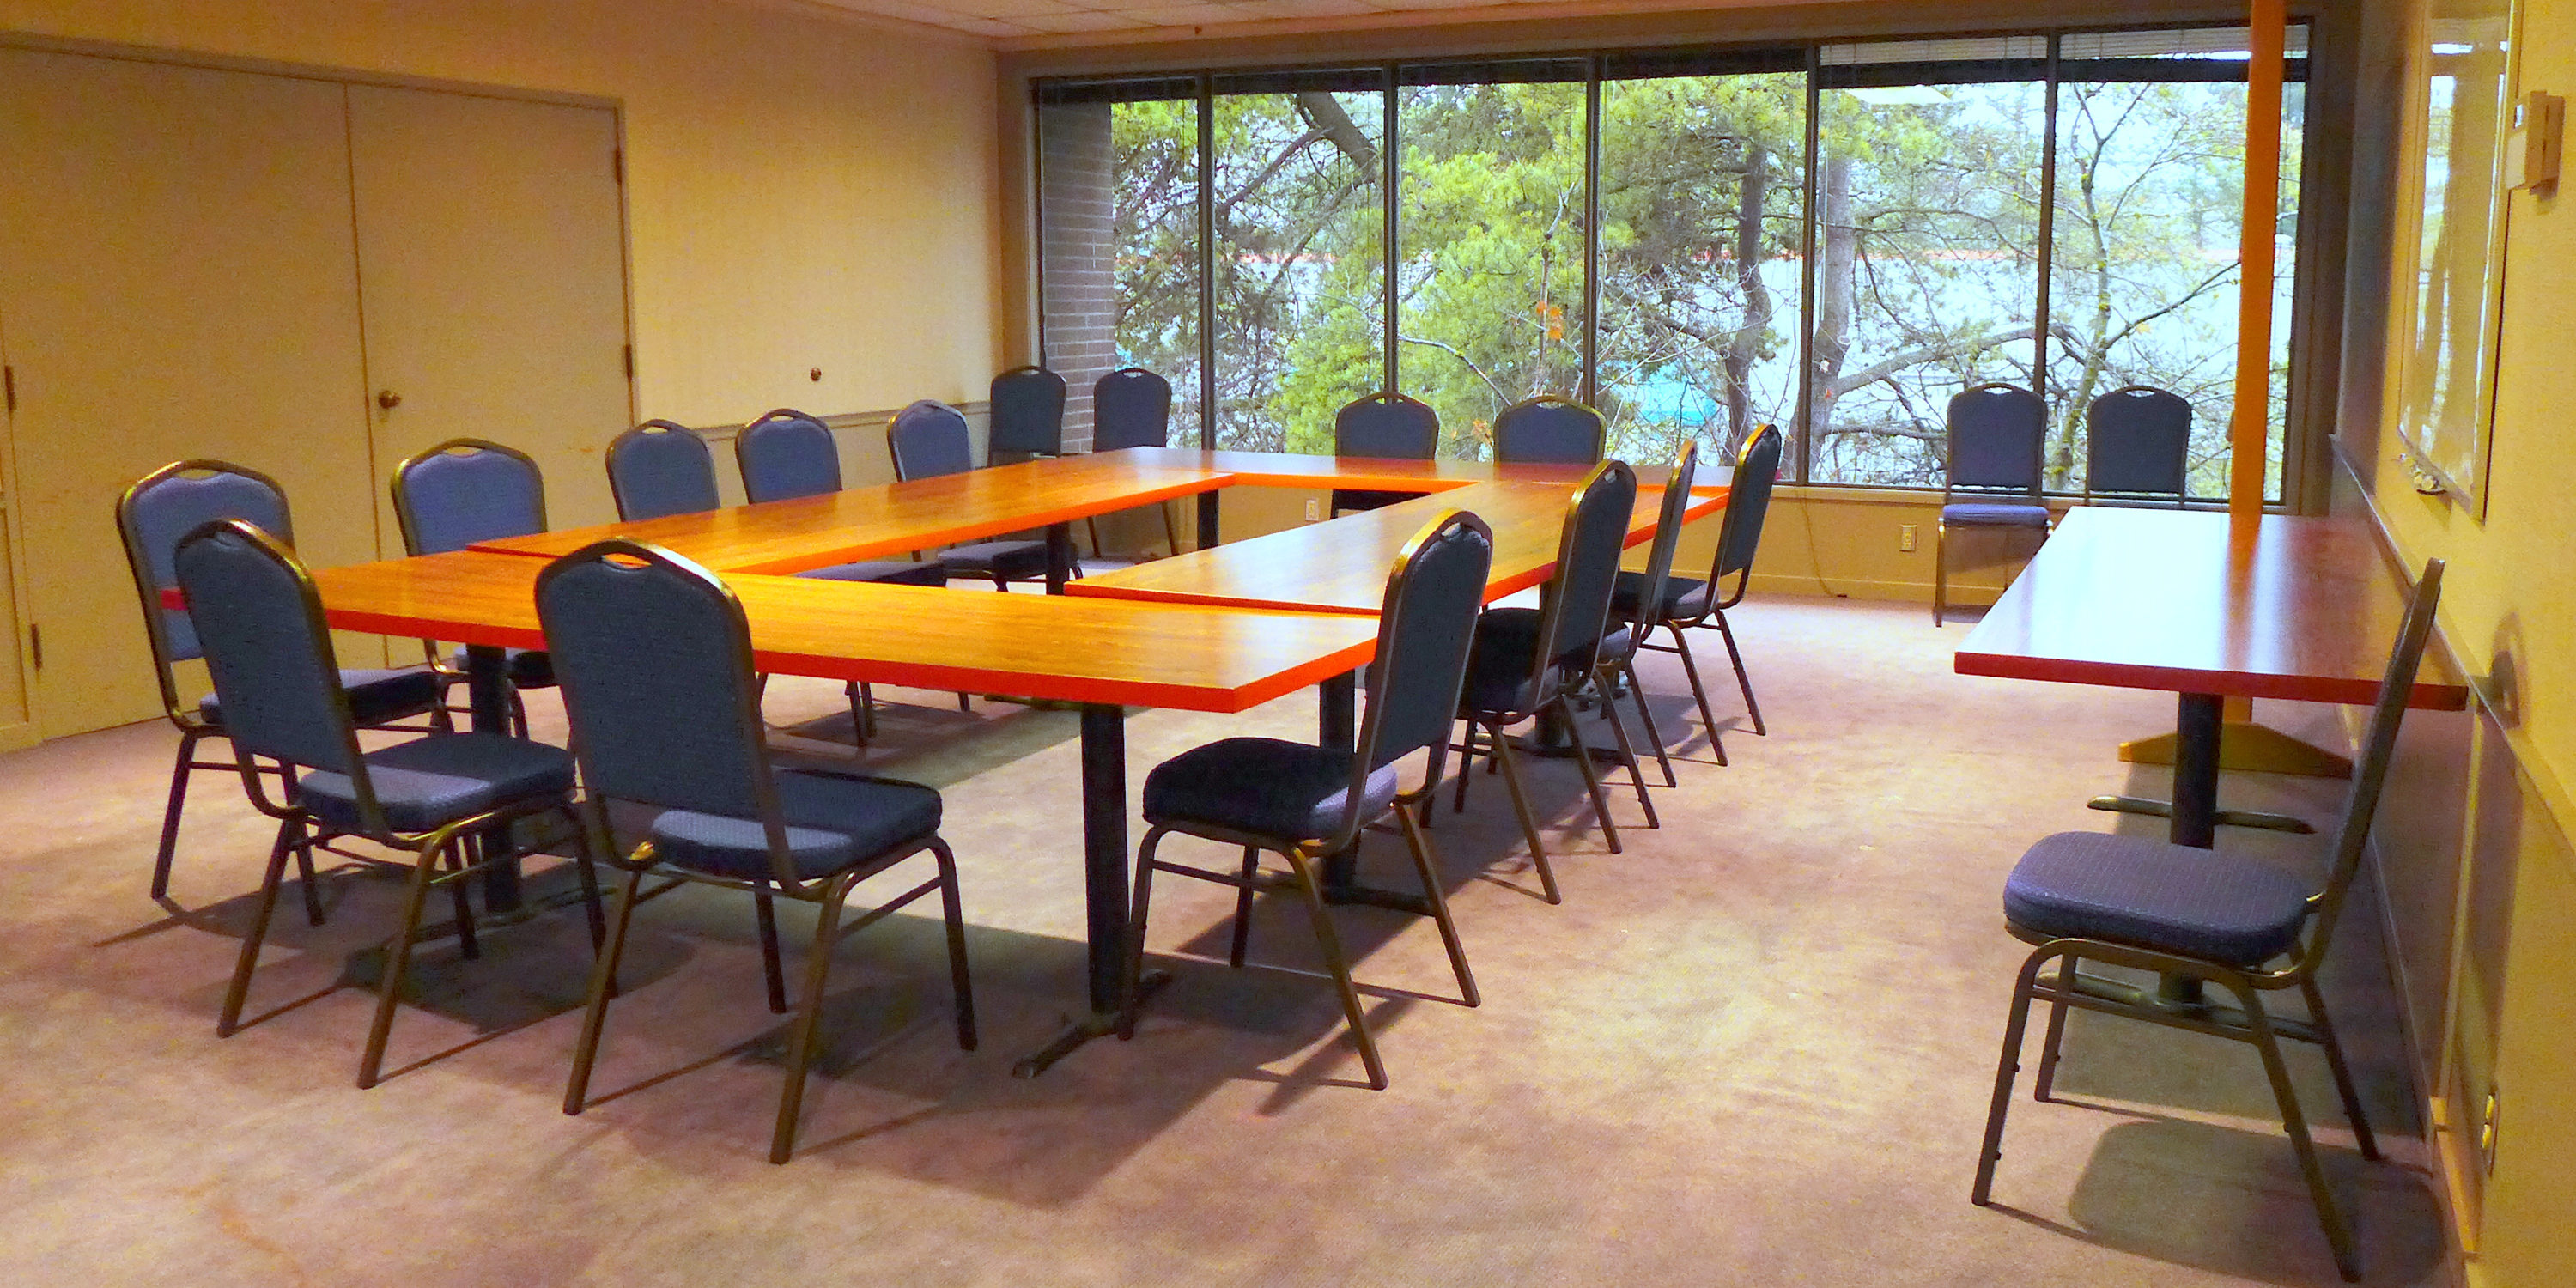 Conference Room 1